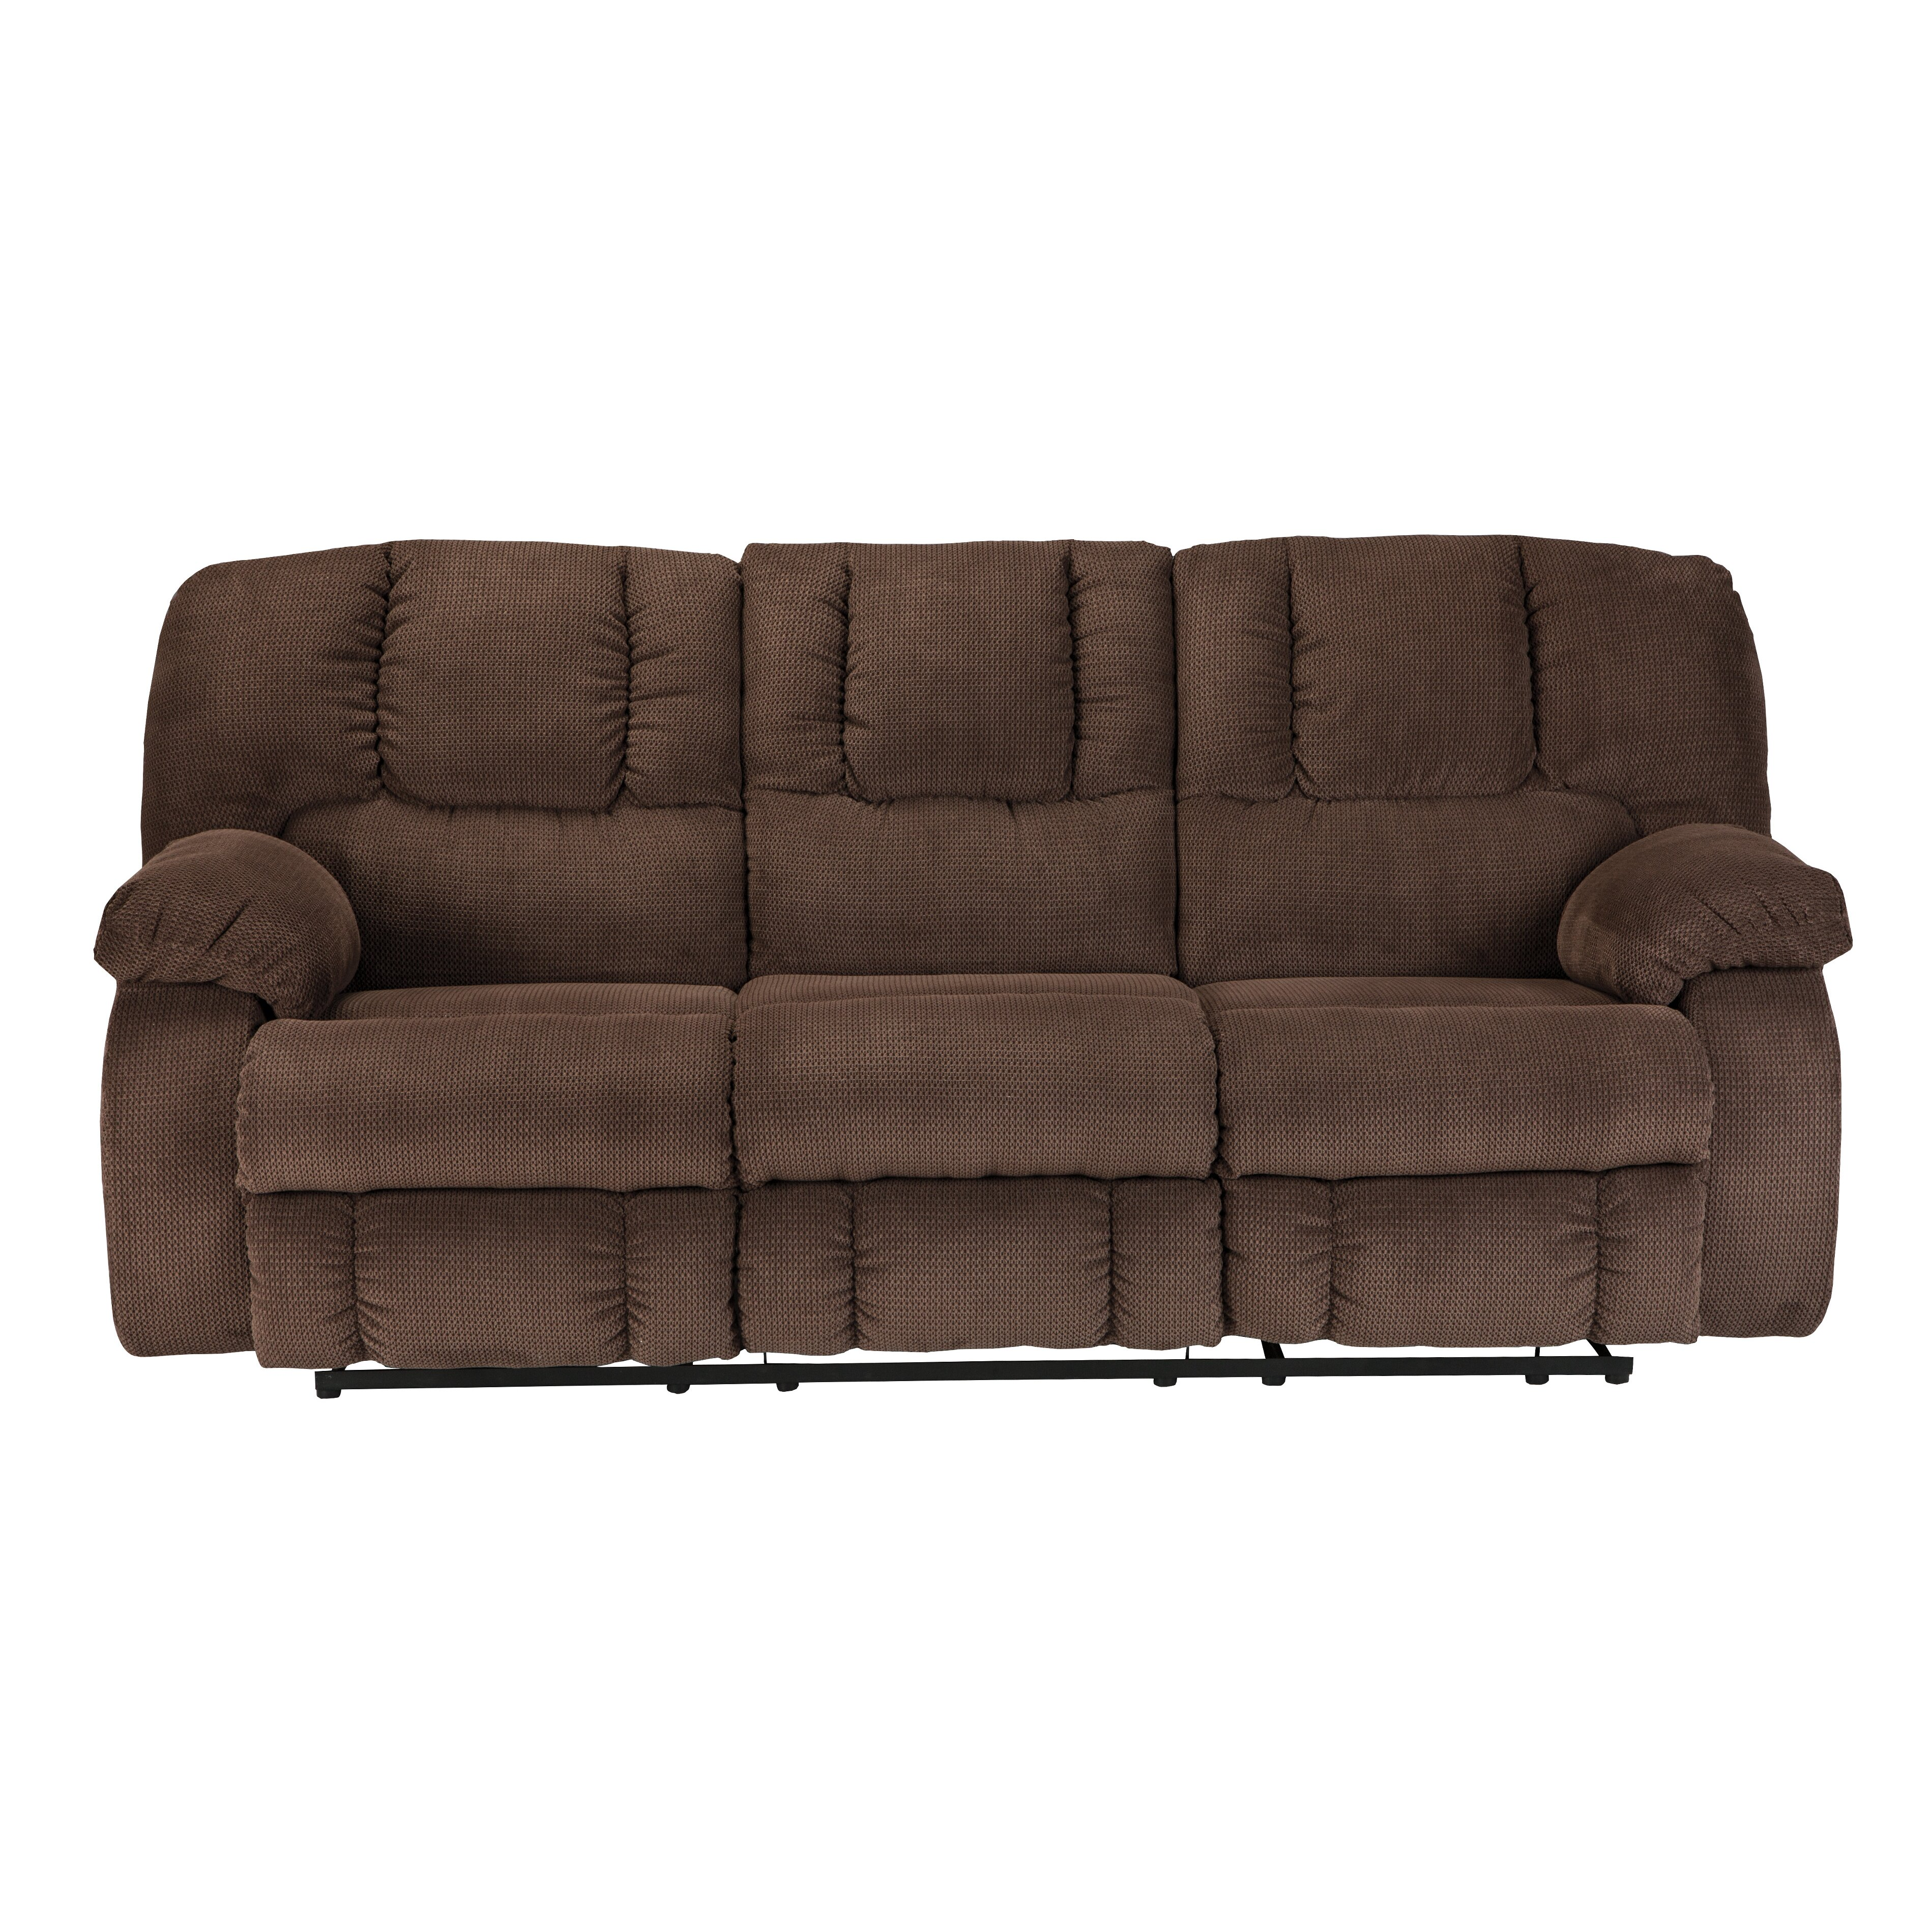 Ashley furniture reclining sofa reviews for I furniture reviews